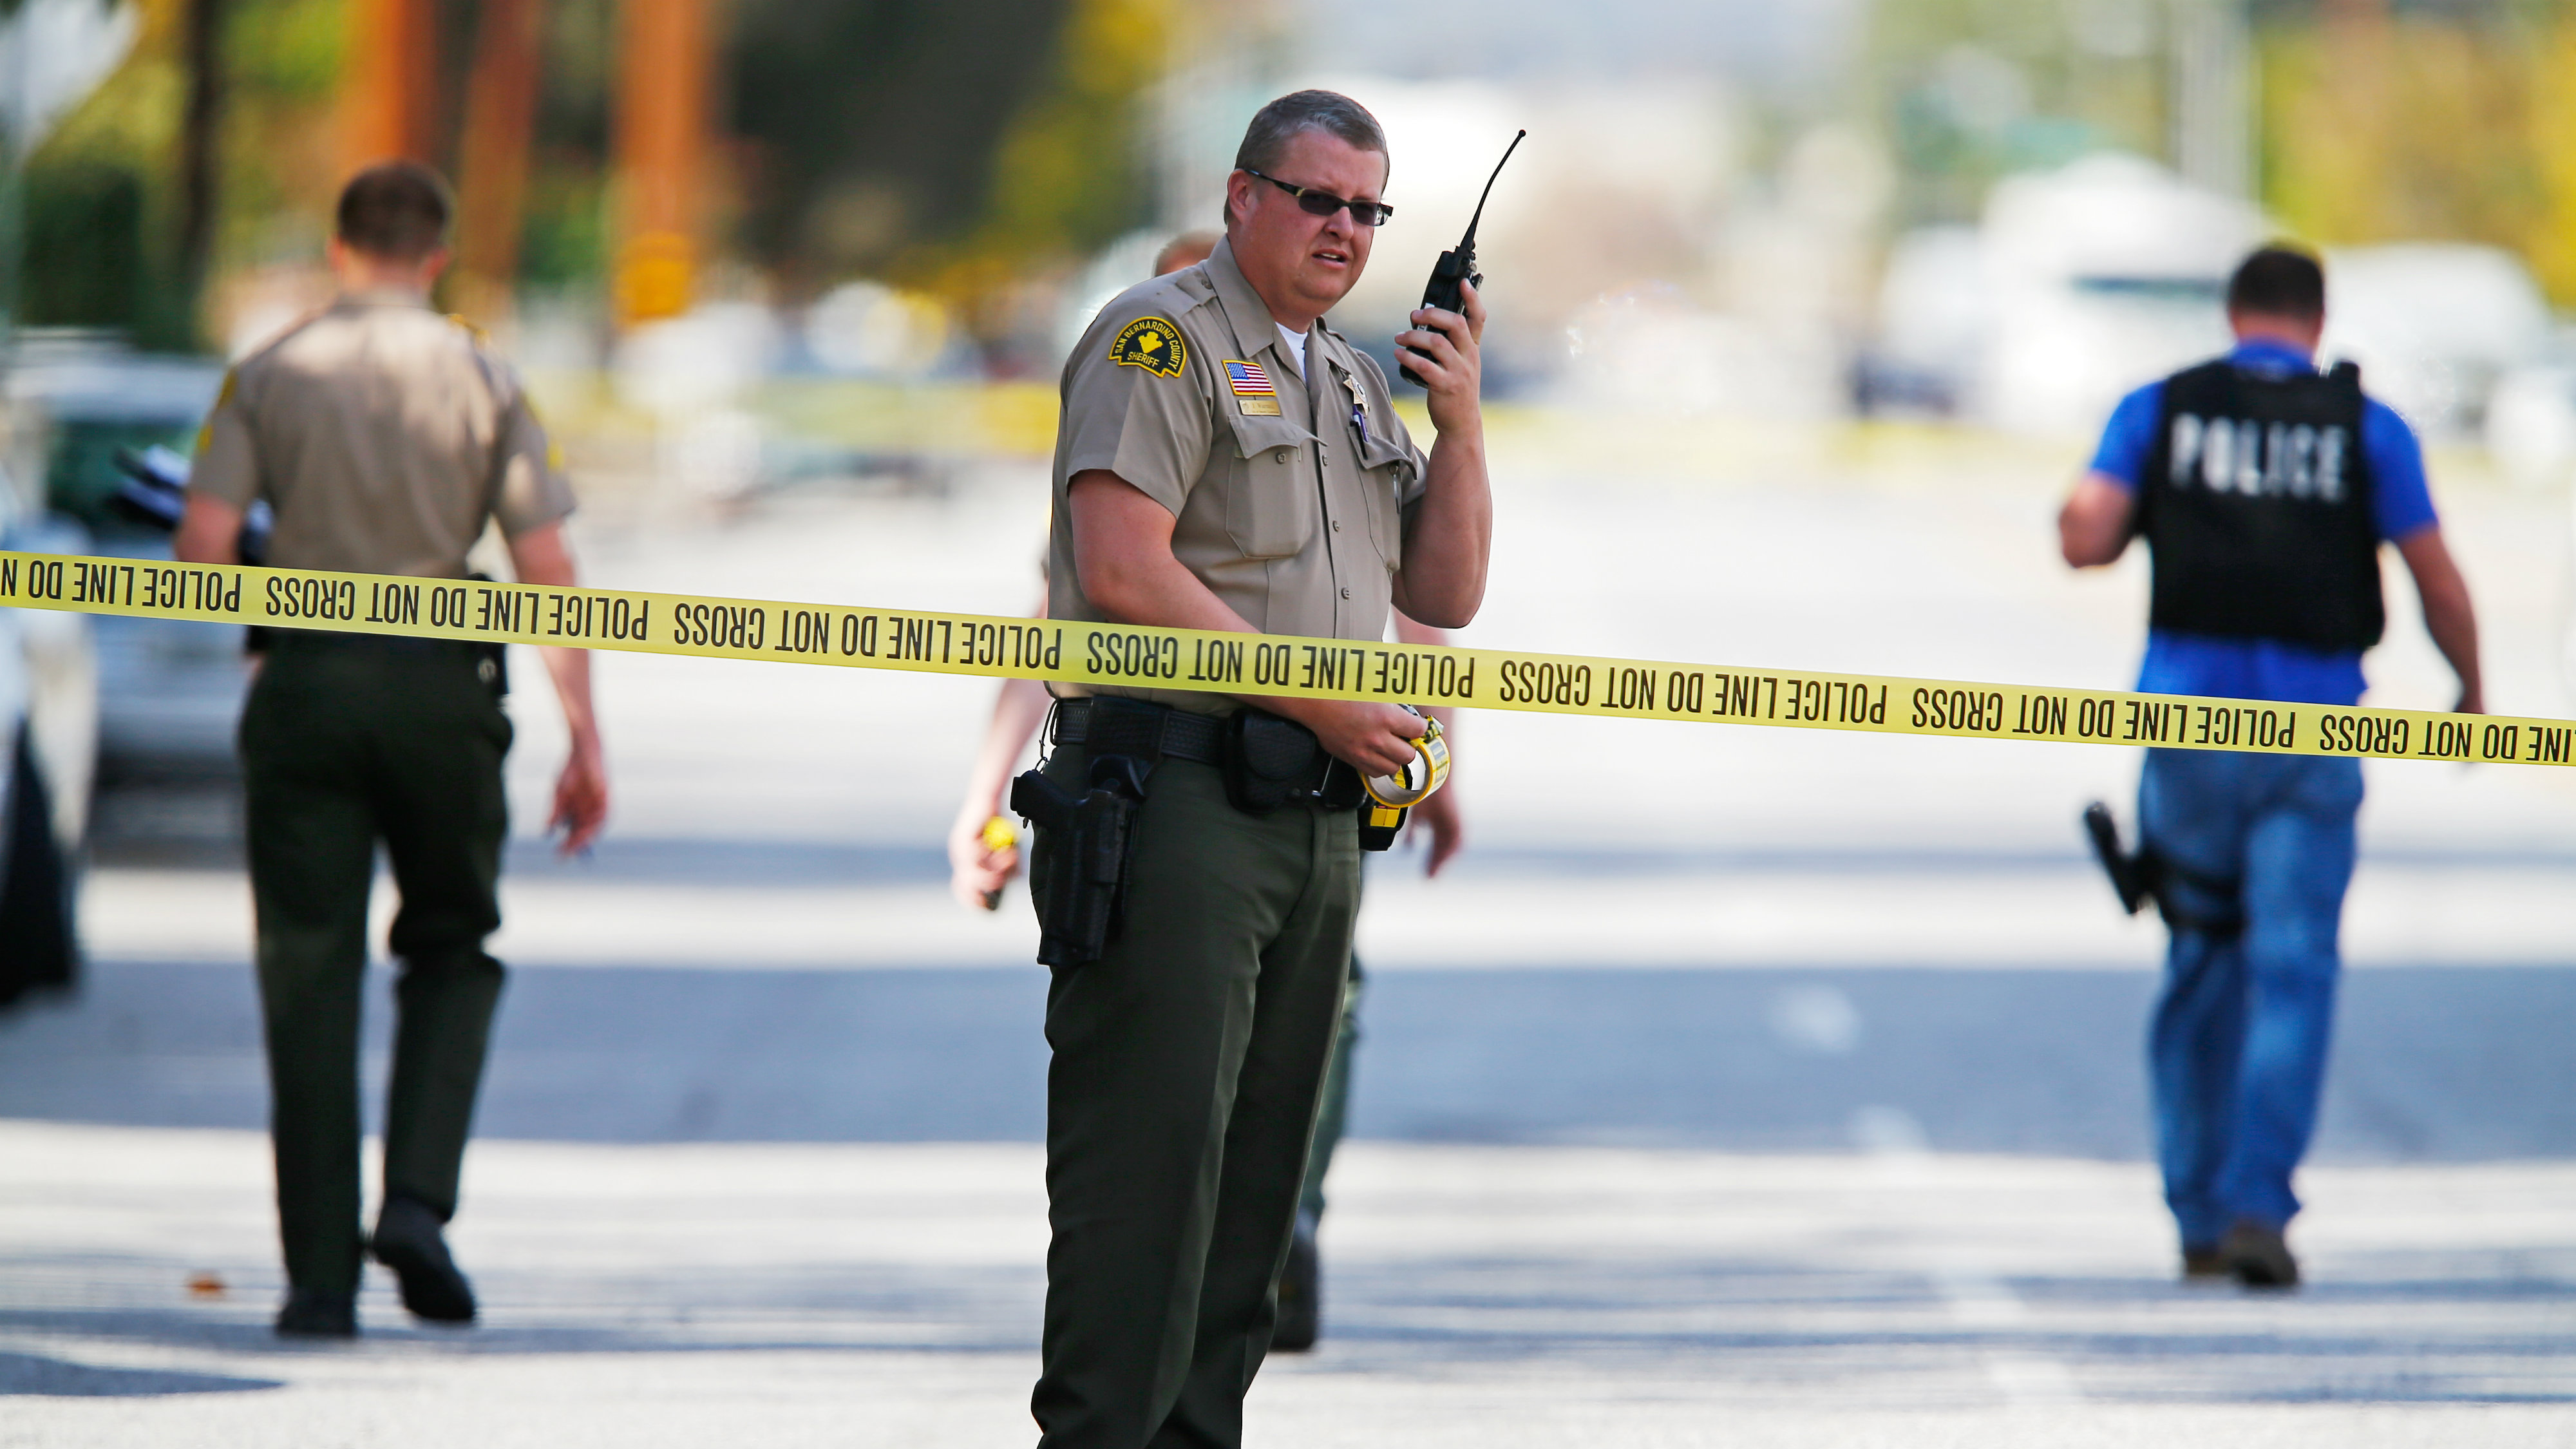 FBI and police investigators examine evidence at the scene of the investigation around the area of the SUV vehicle where two suspects were shot by police following a mass shooting in San Bernardino, California December 3, 2015. Authorities on Thursday were working to determine why Syed Rizwan Farook 28, and Tashfeen Malik, 27, opened fire at a holiday party of his co-workers in Southern California, killing 14 people and wounding 17 in an attack that appeared to have been planned.